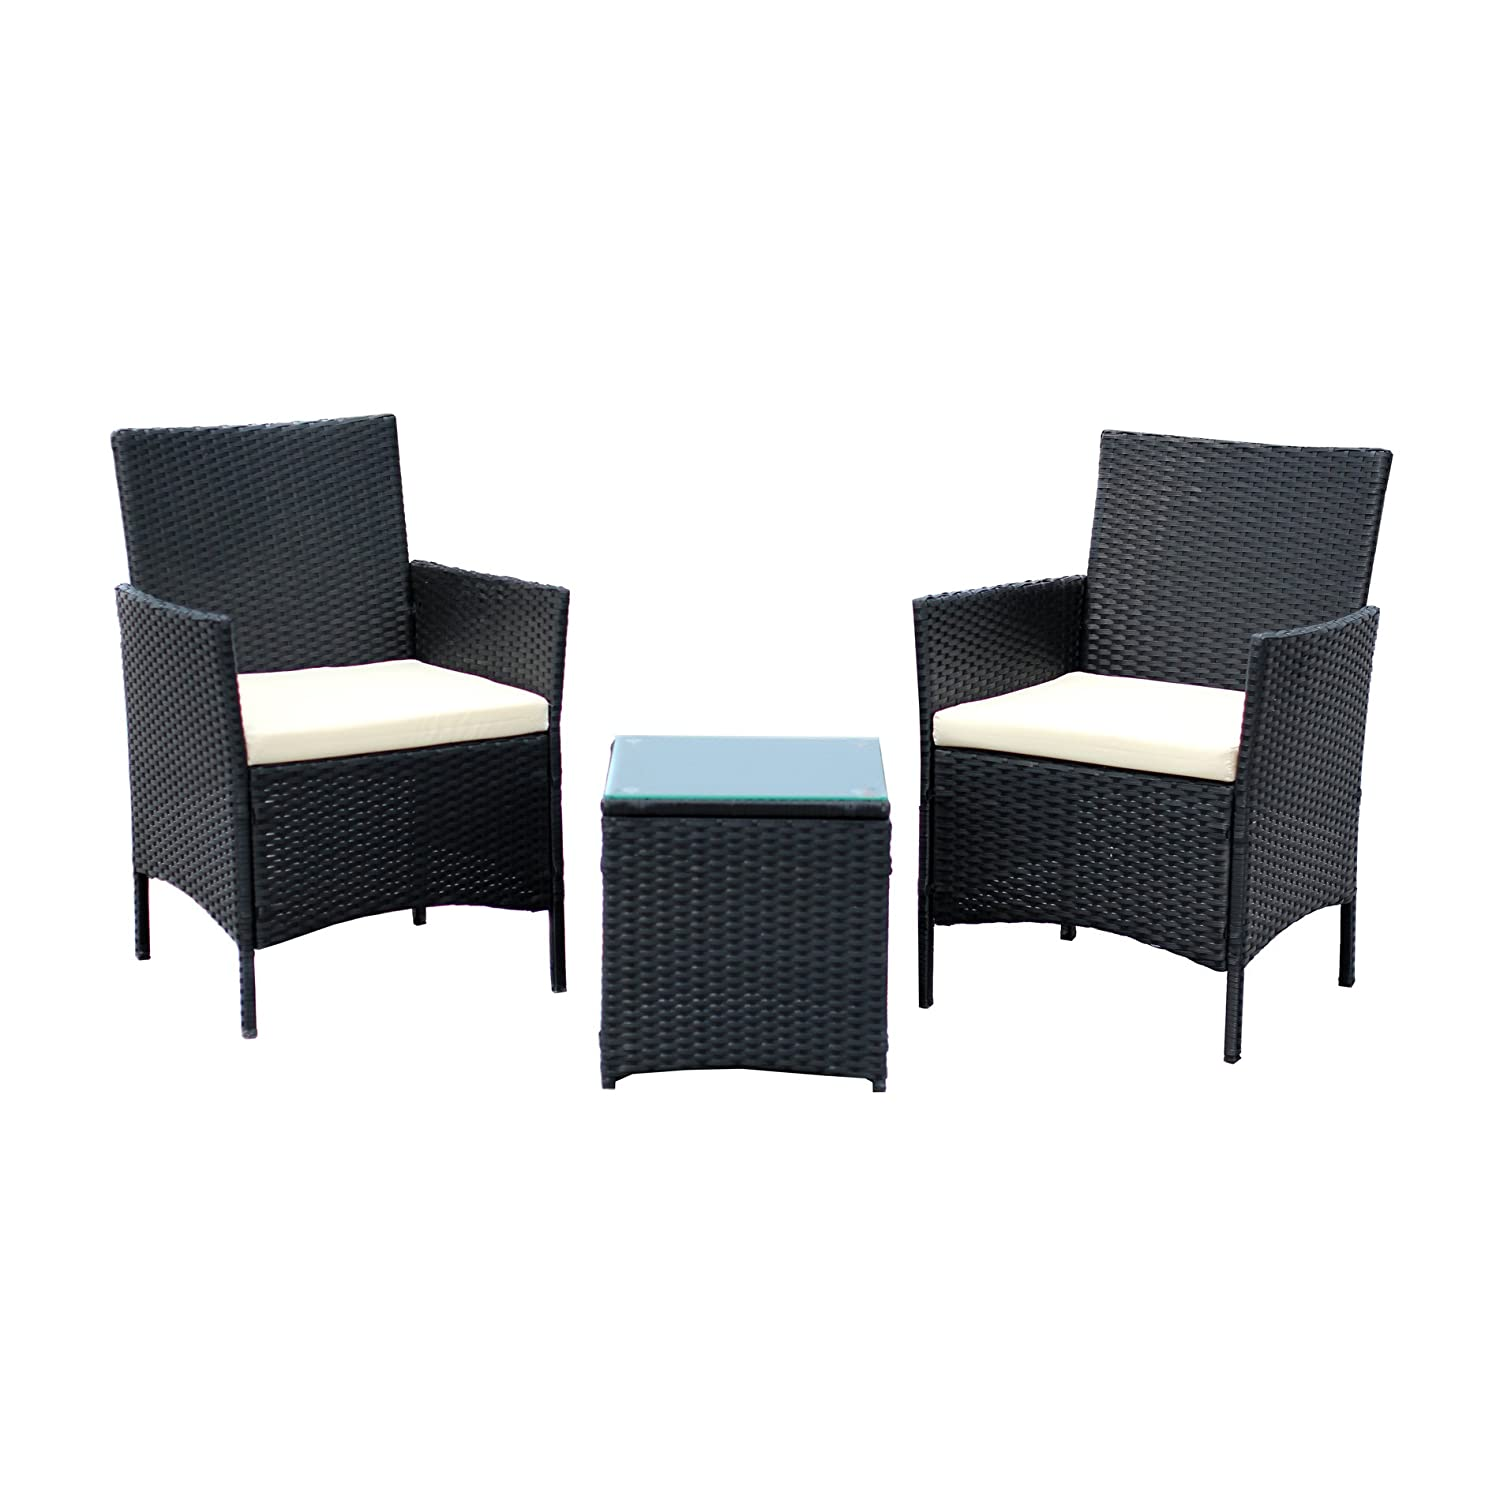 Amazon.com : EBS 3 Piece Patio Rattan Furniture Set, Clearance ...